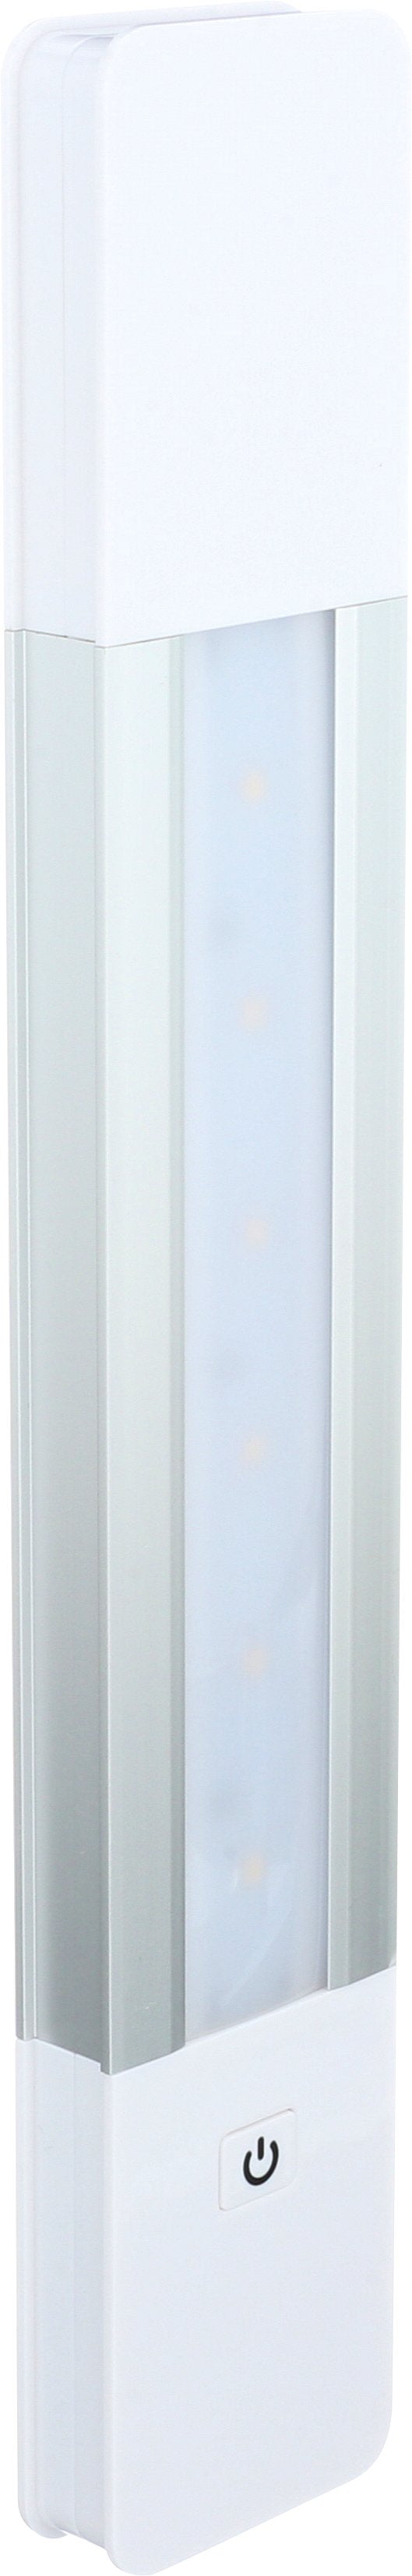 Bria LED Bar Light On/Off | BL-BR33B-SW